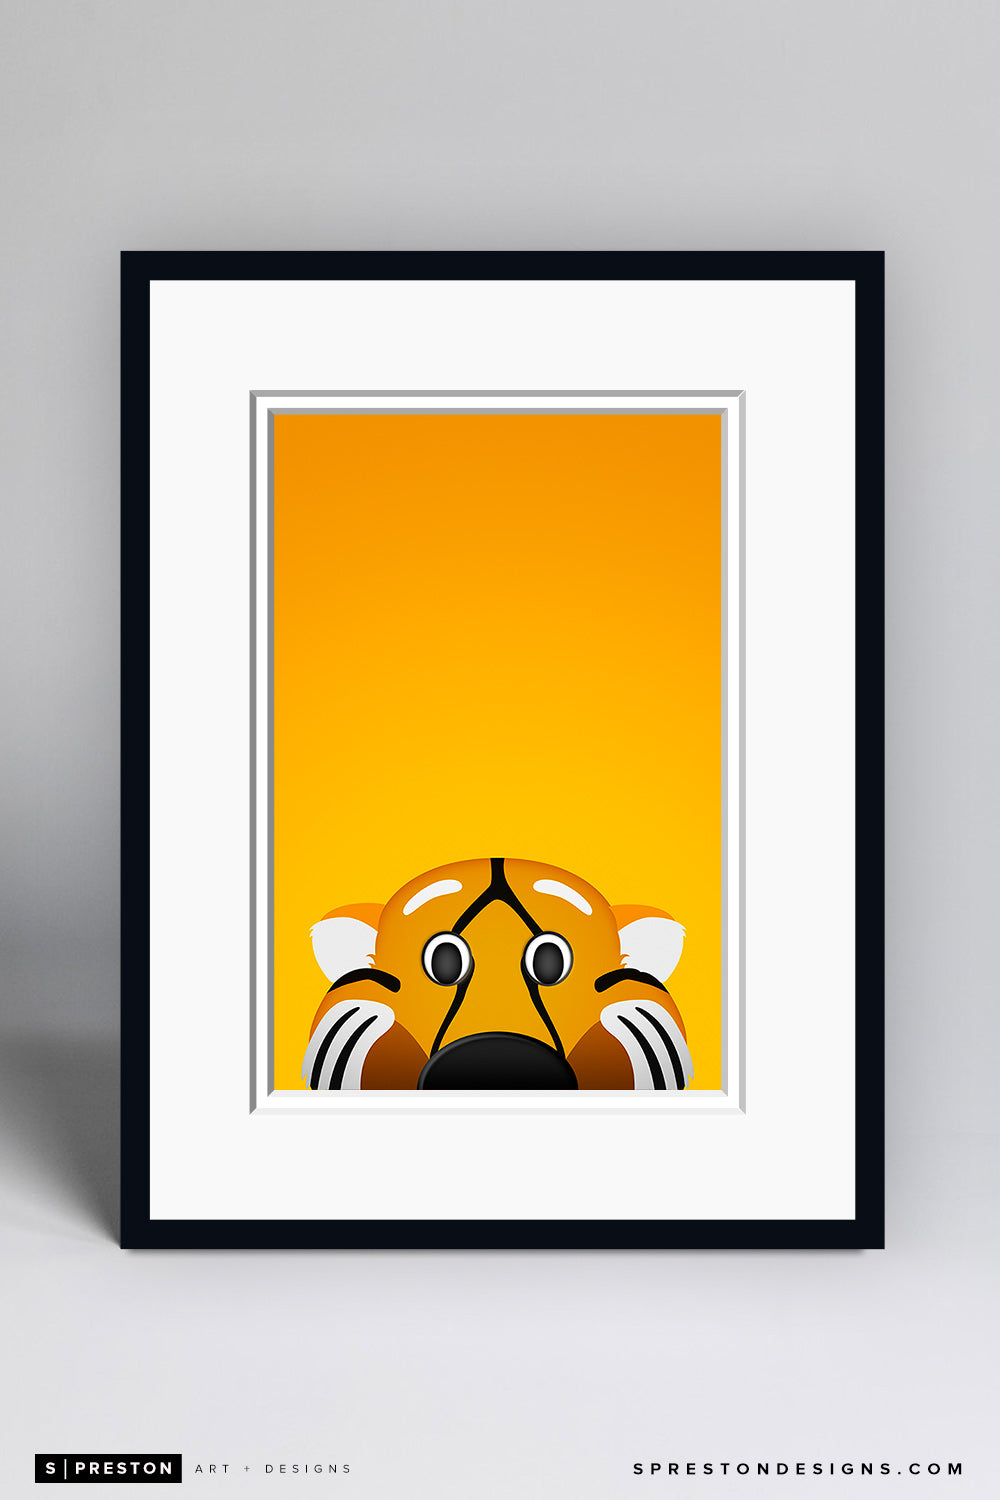 Minimalist Truman the Tiger - Mizzou Art Print - University of Missouri - S. Preston Art + Designs